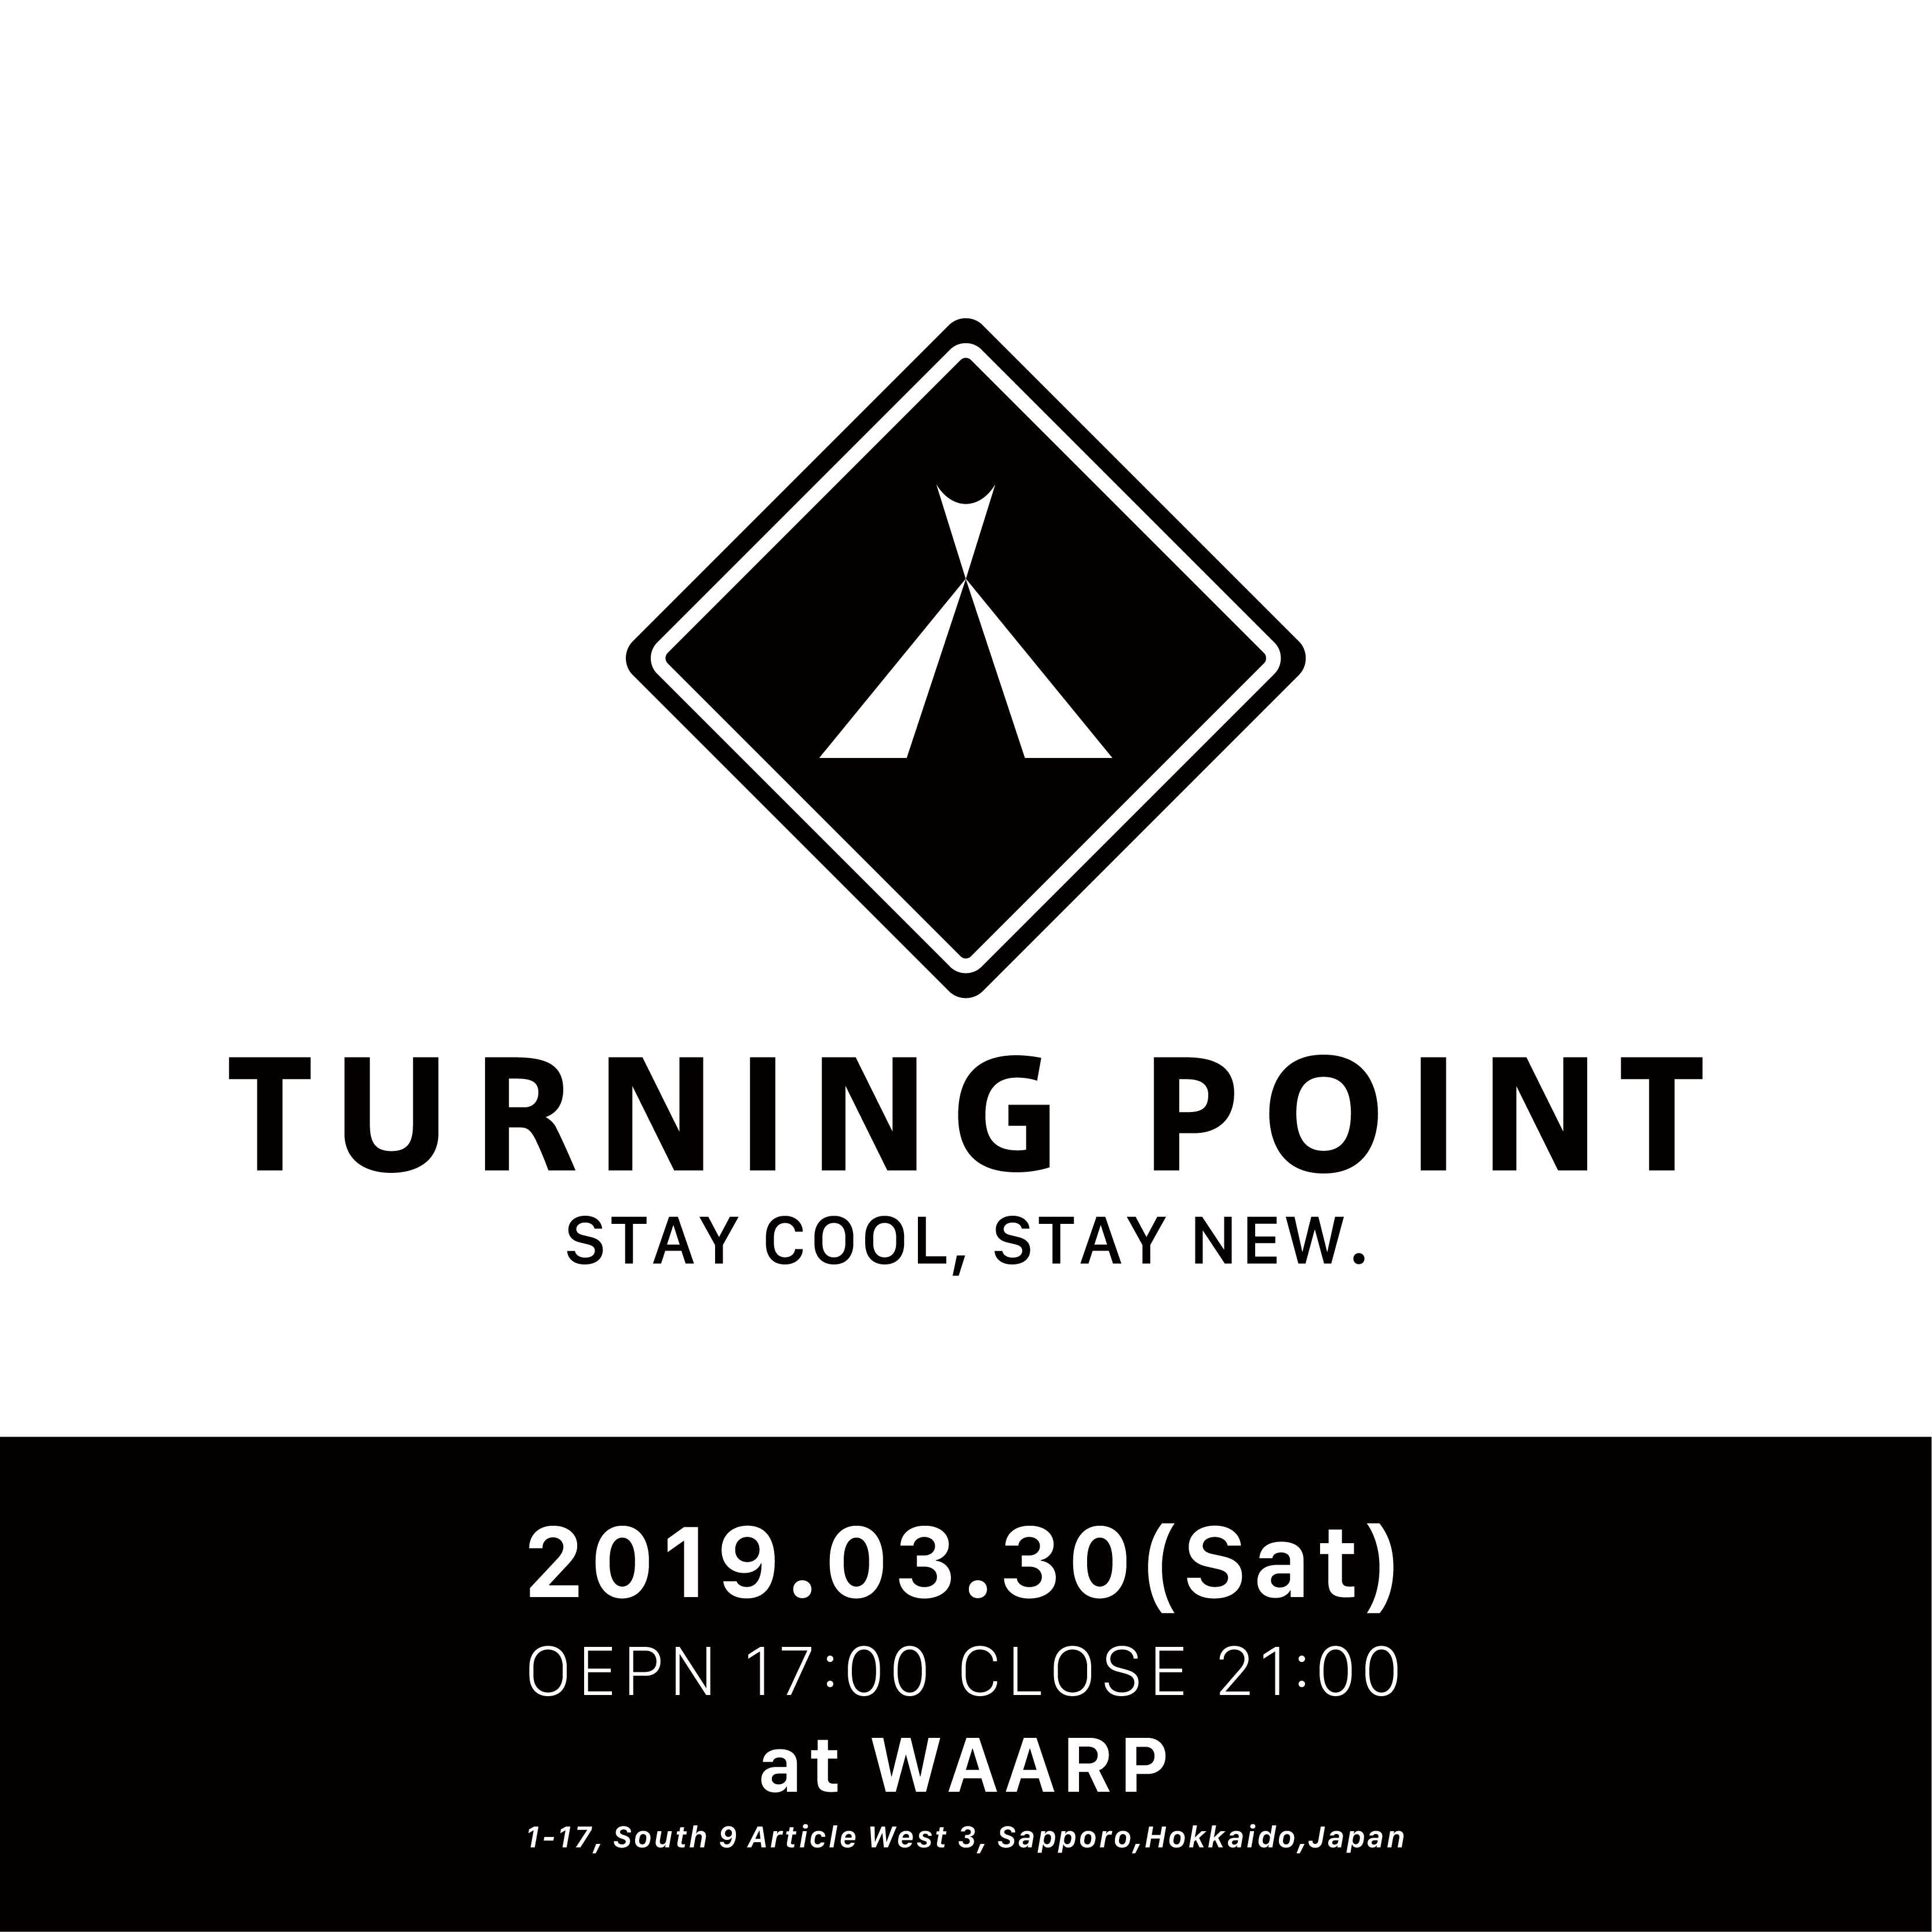 2019_03_30_sat_turning_point_アートボード 1